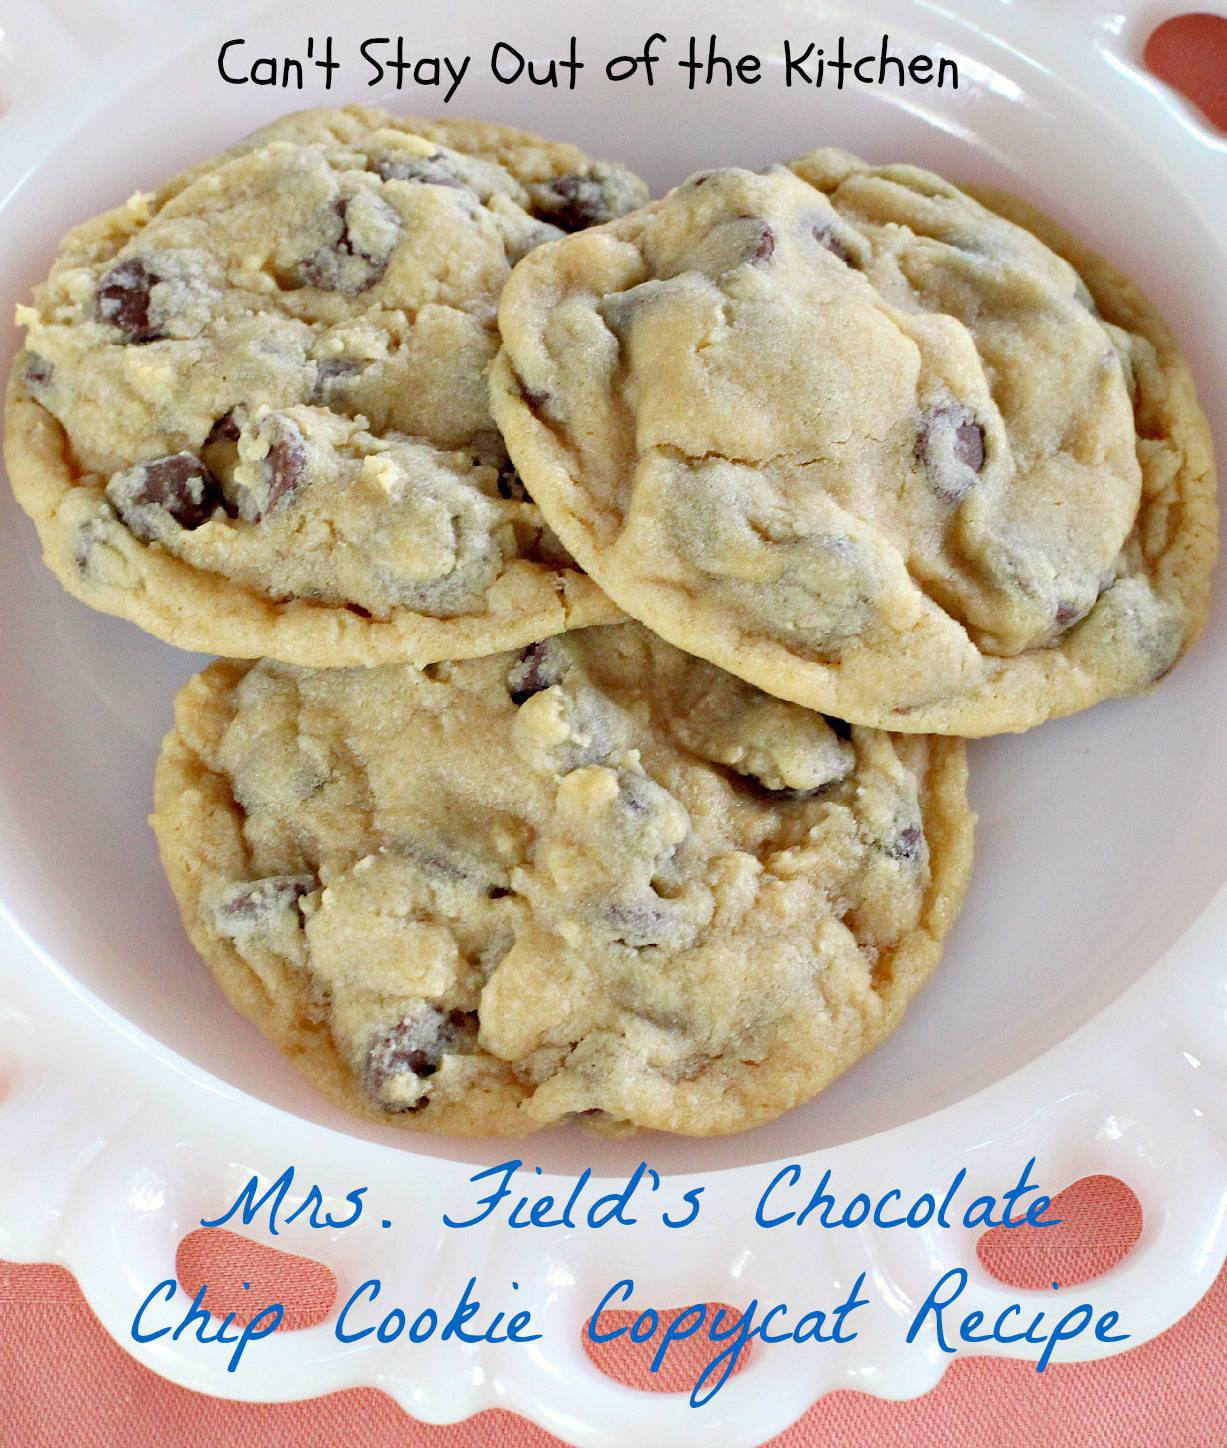 Mrs Fields Chocolate Chip Cookies  Mrs Field s Chocolate Chip Cookie Copycat Recipe Can t